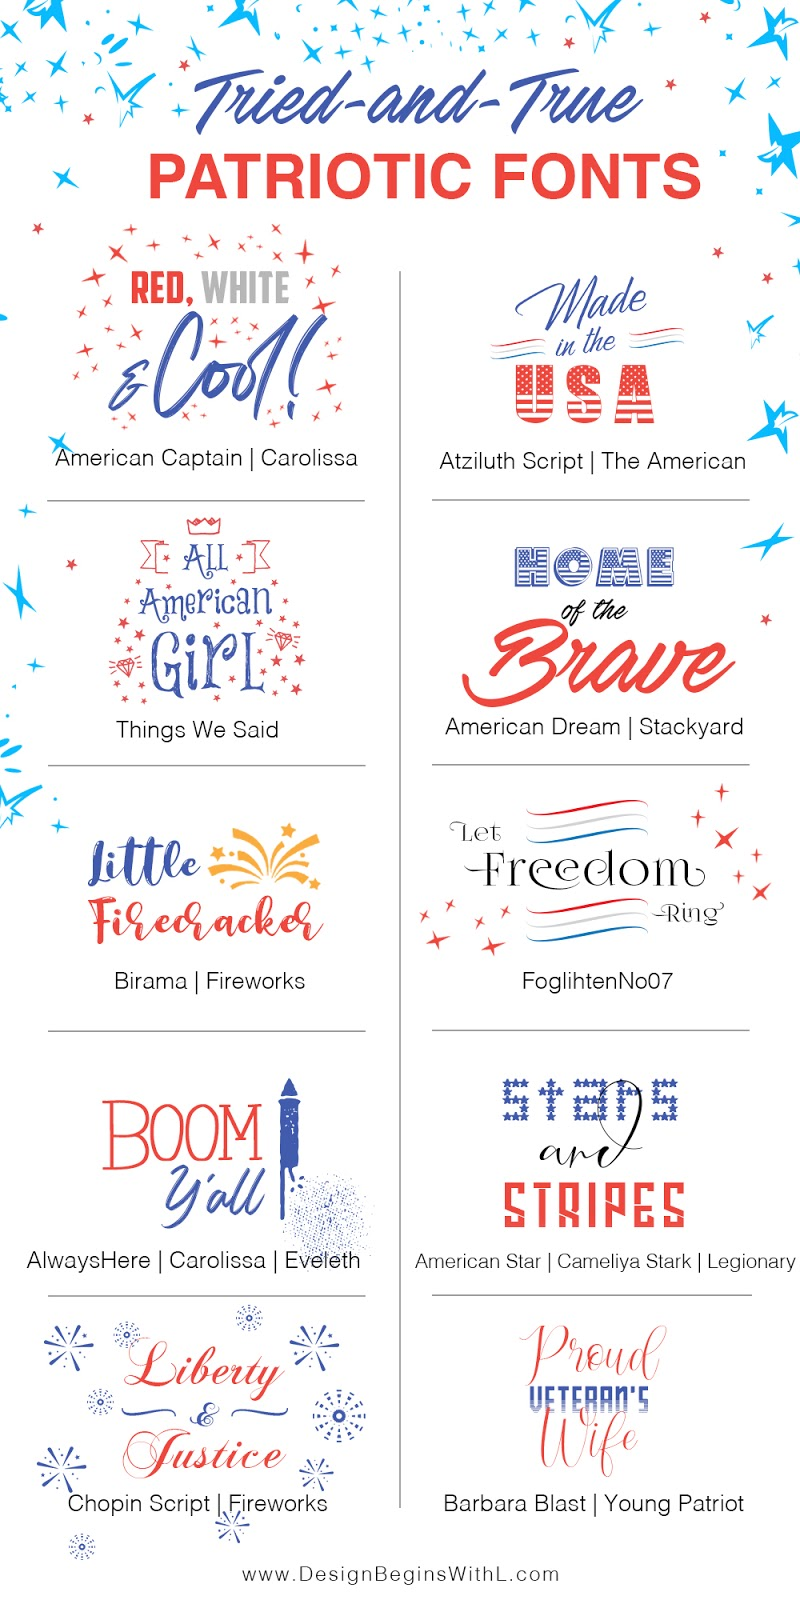 10 Free Patriotic Fonts for Memorial Day, 4th of July, and Veterans Day